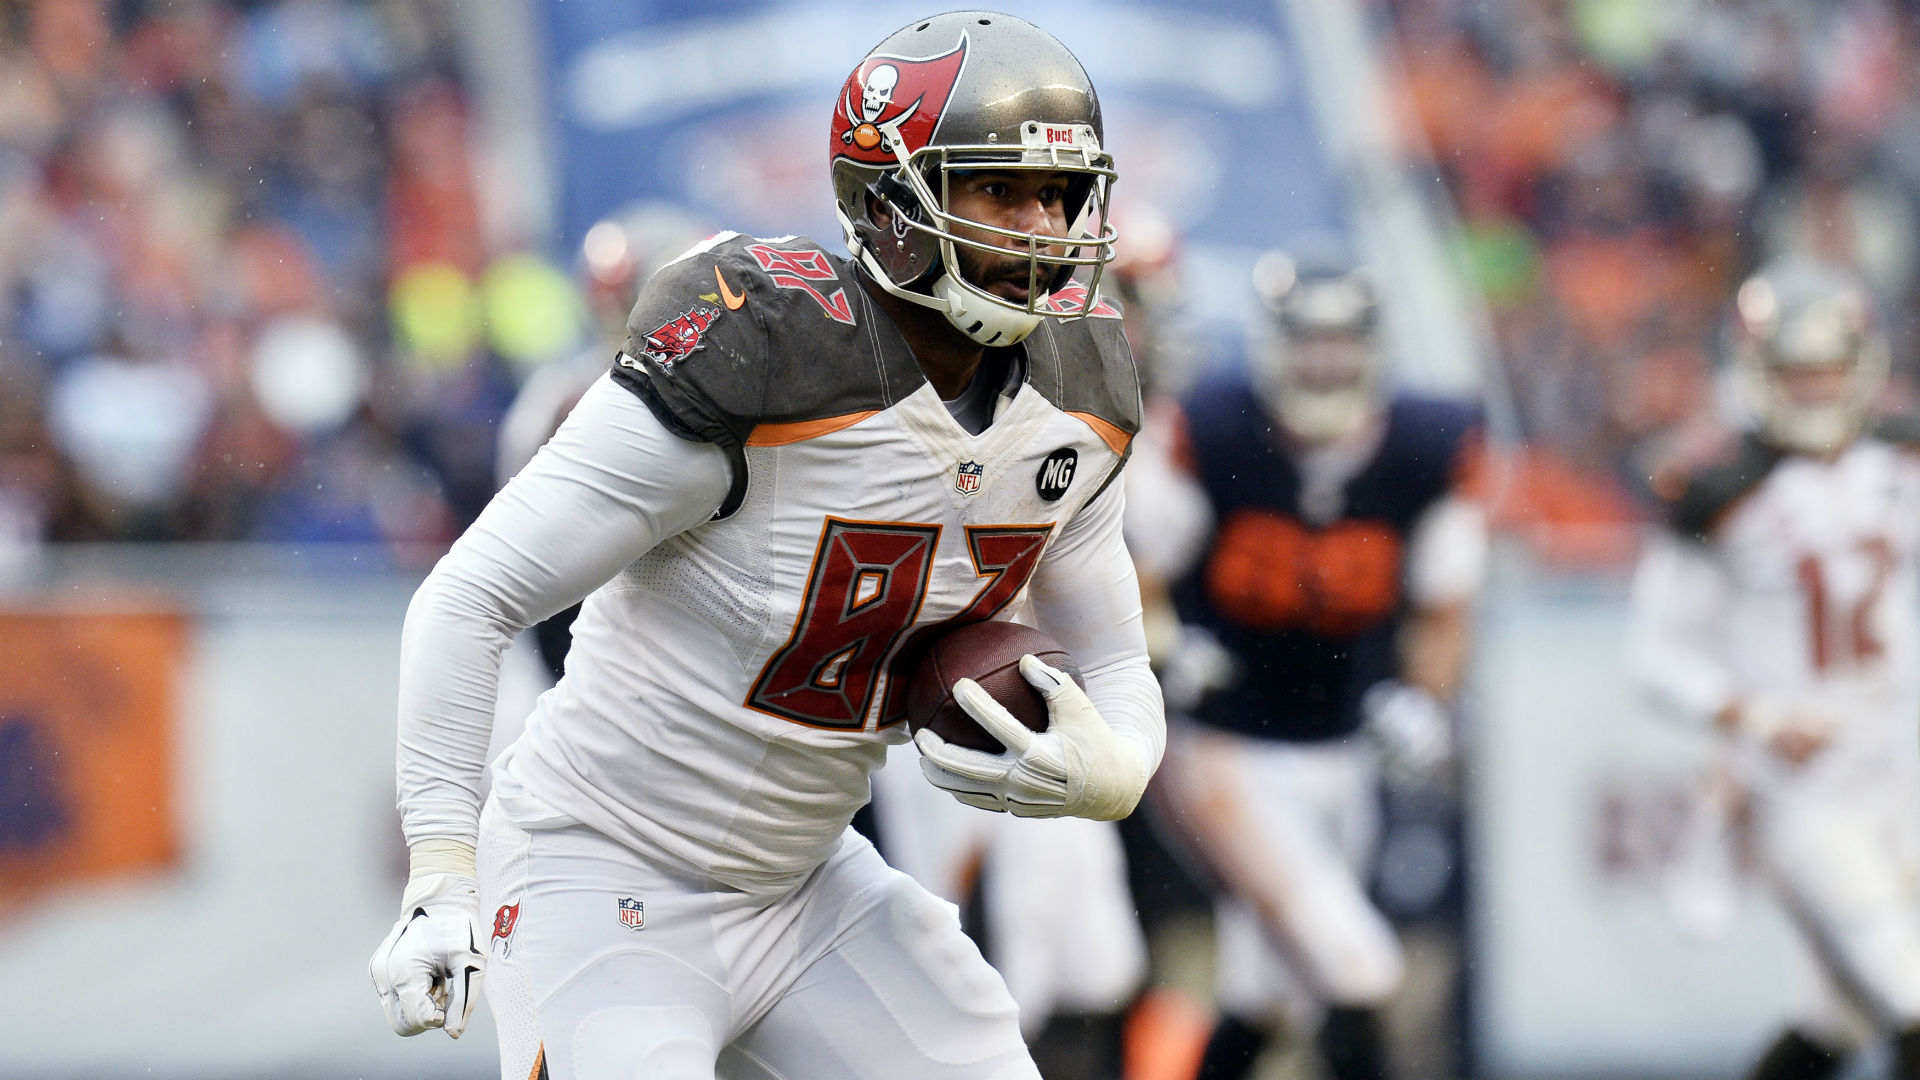 Seferian-Jenkins reportedly cut by Bucs after arrest